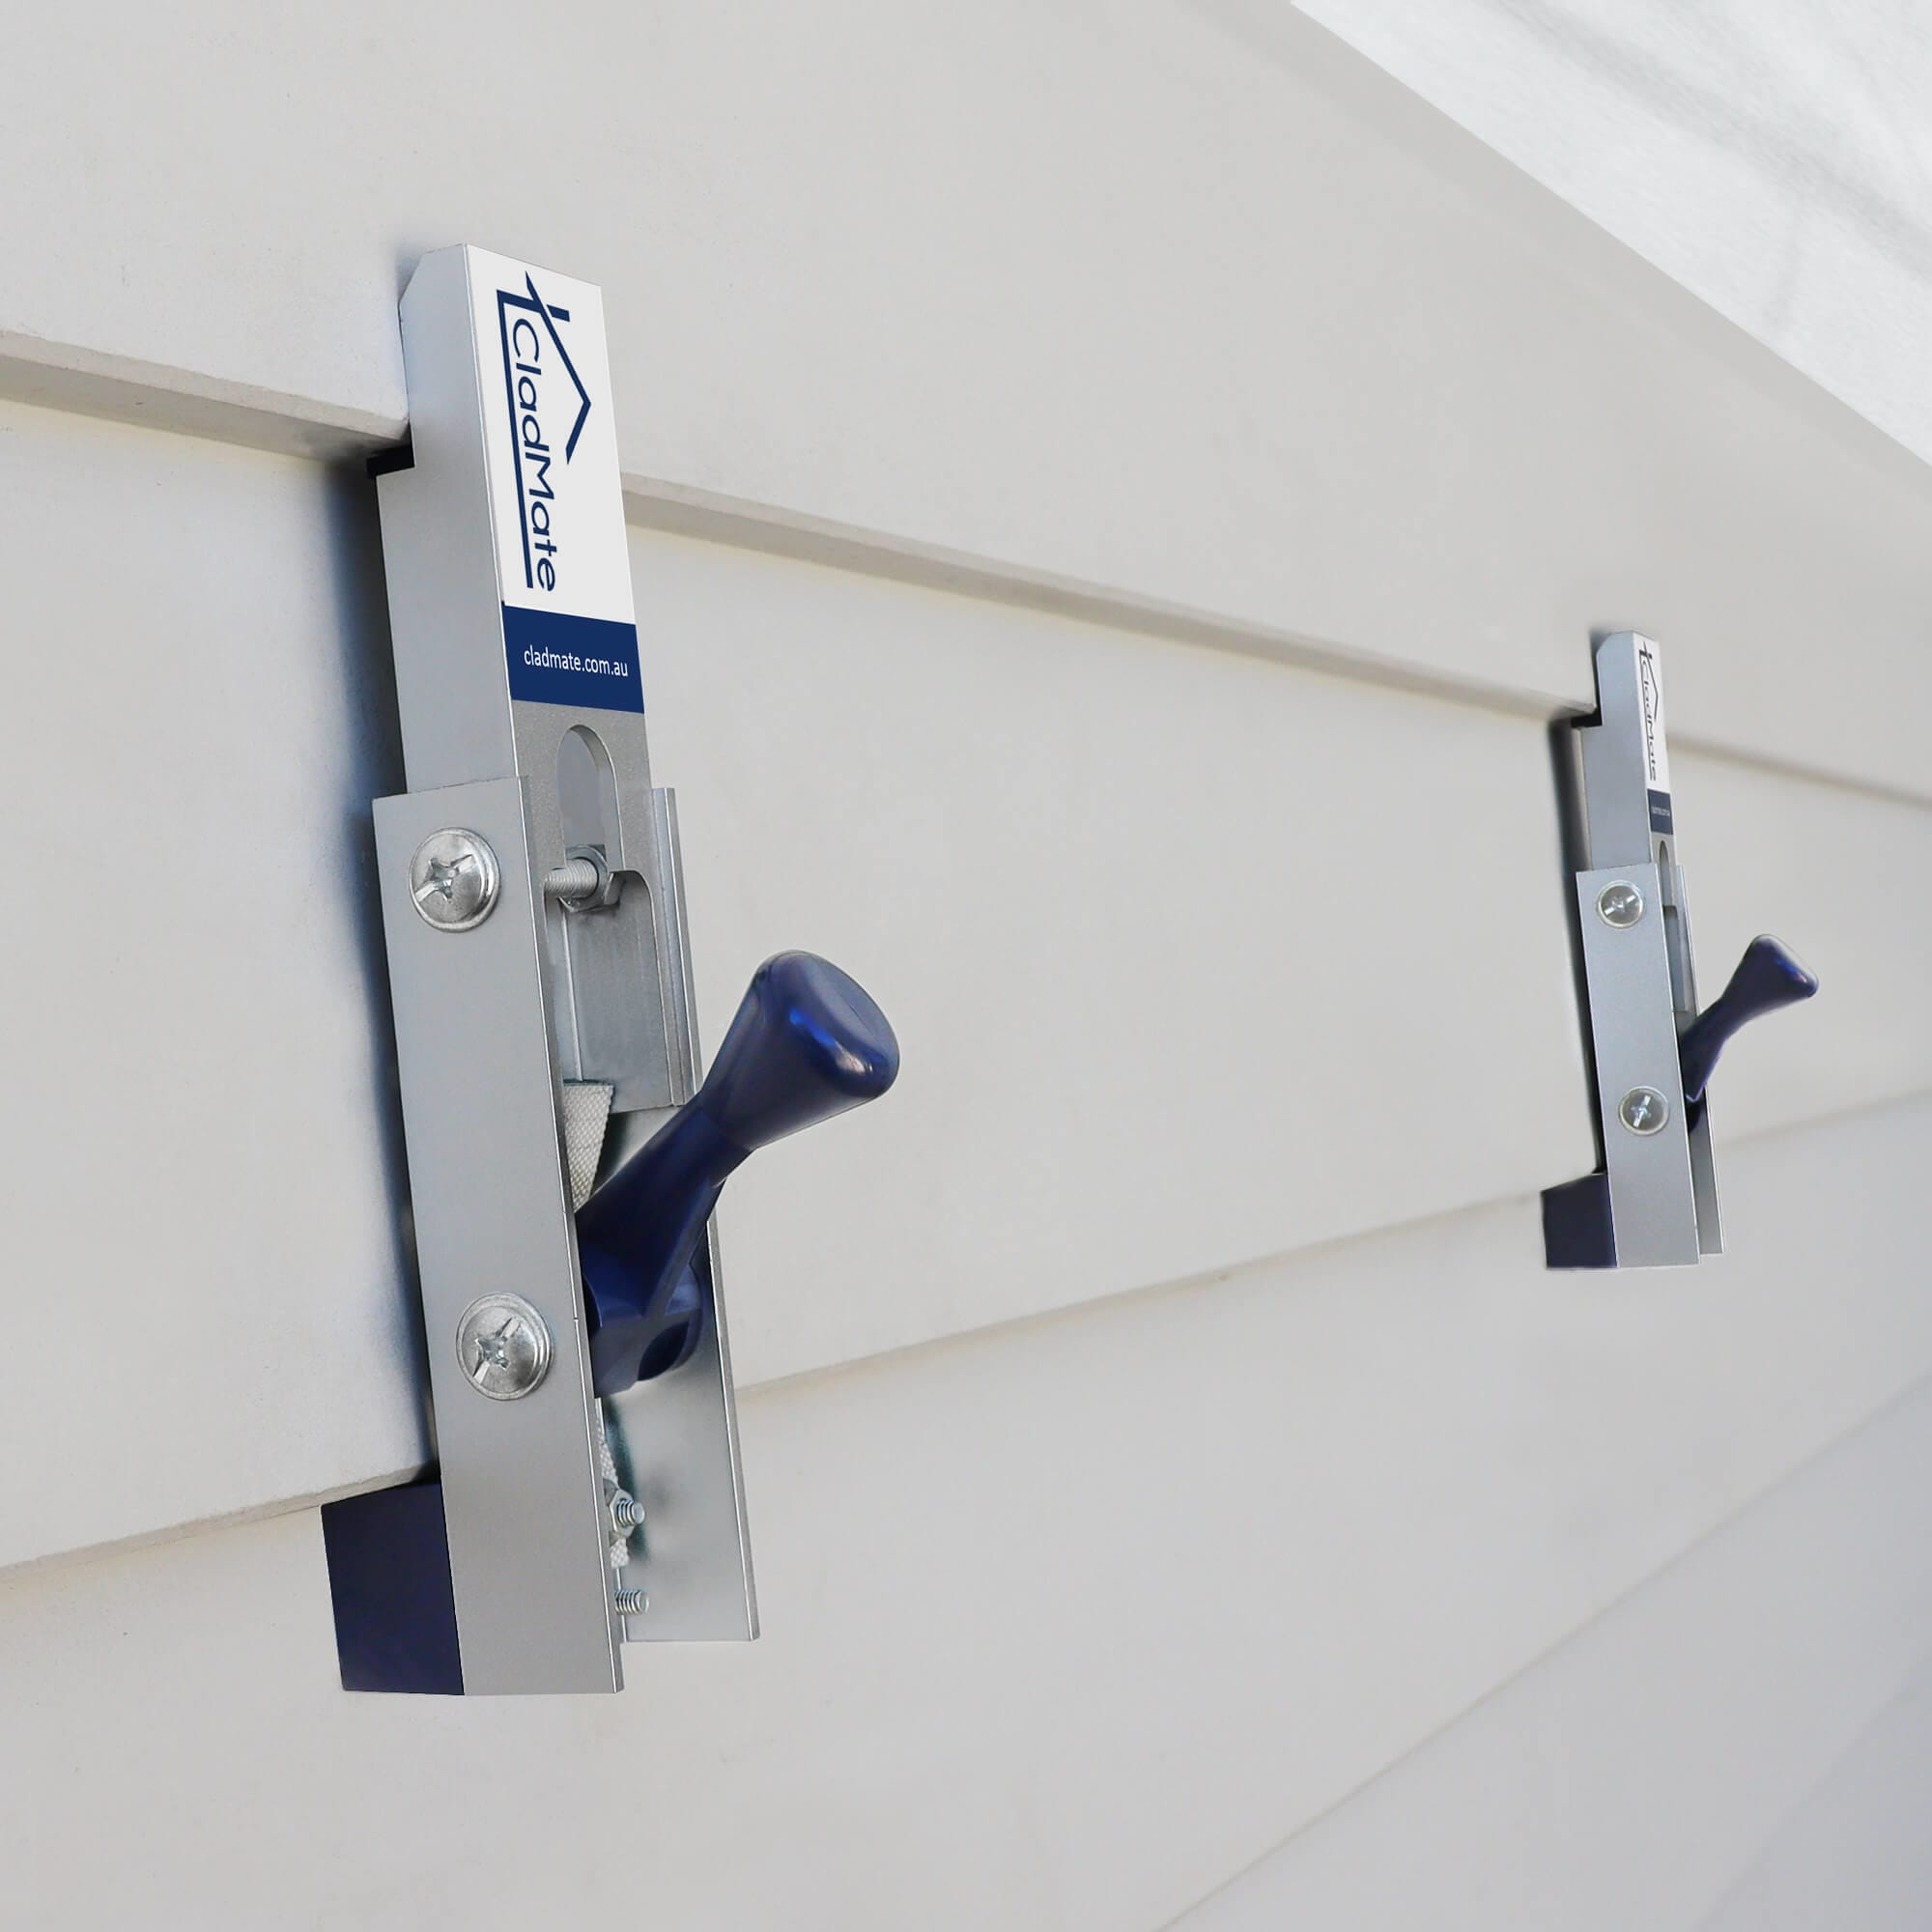 CladMate WeatherBoard Clamps Holding Scyon Linea WeatherBoards